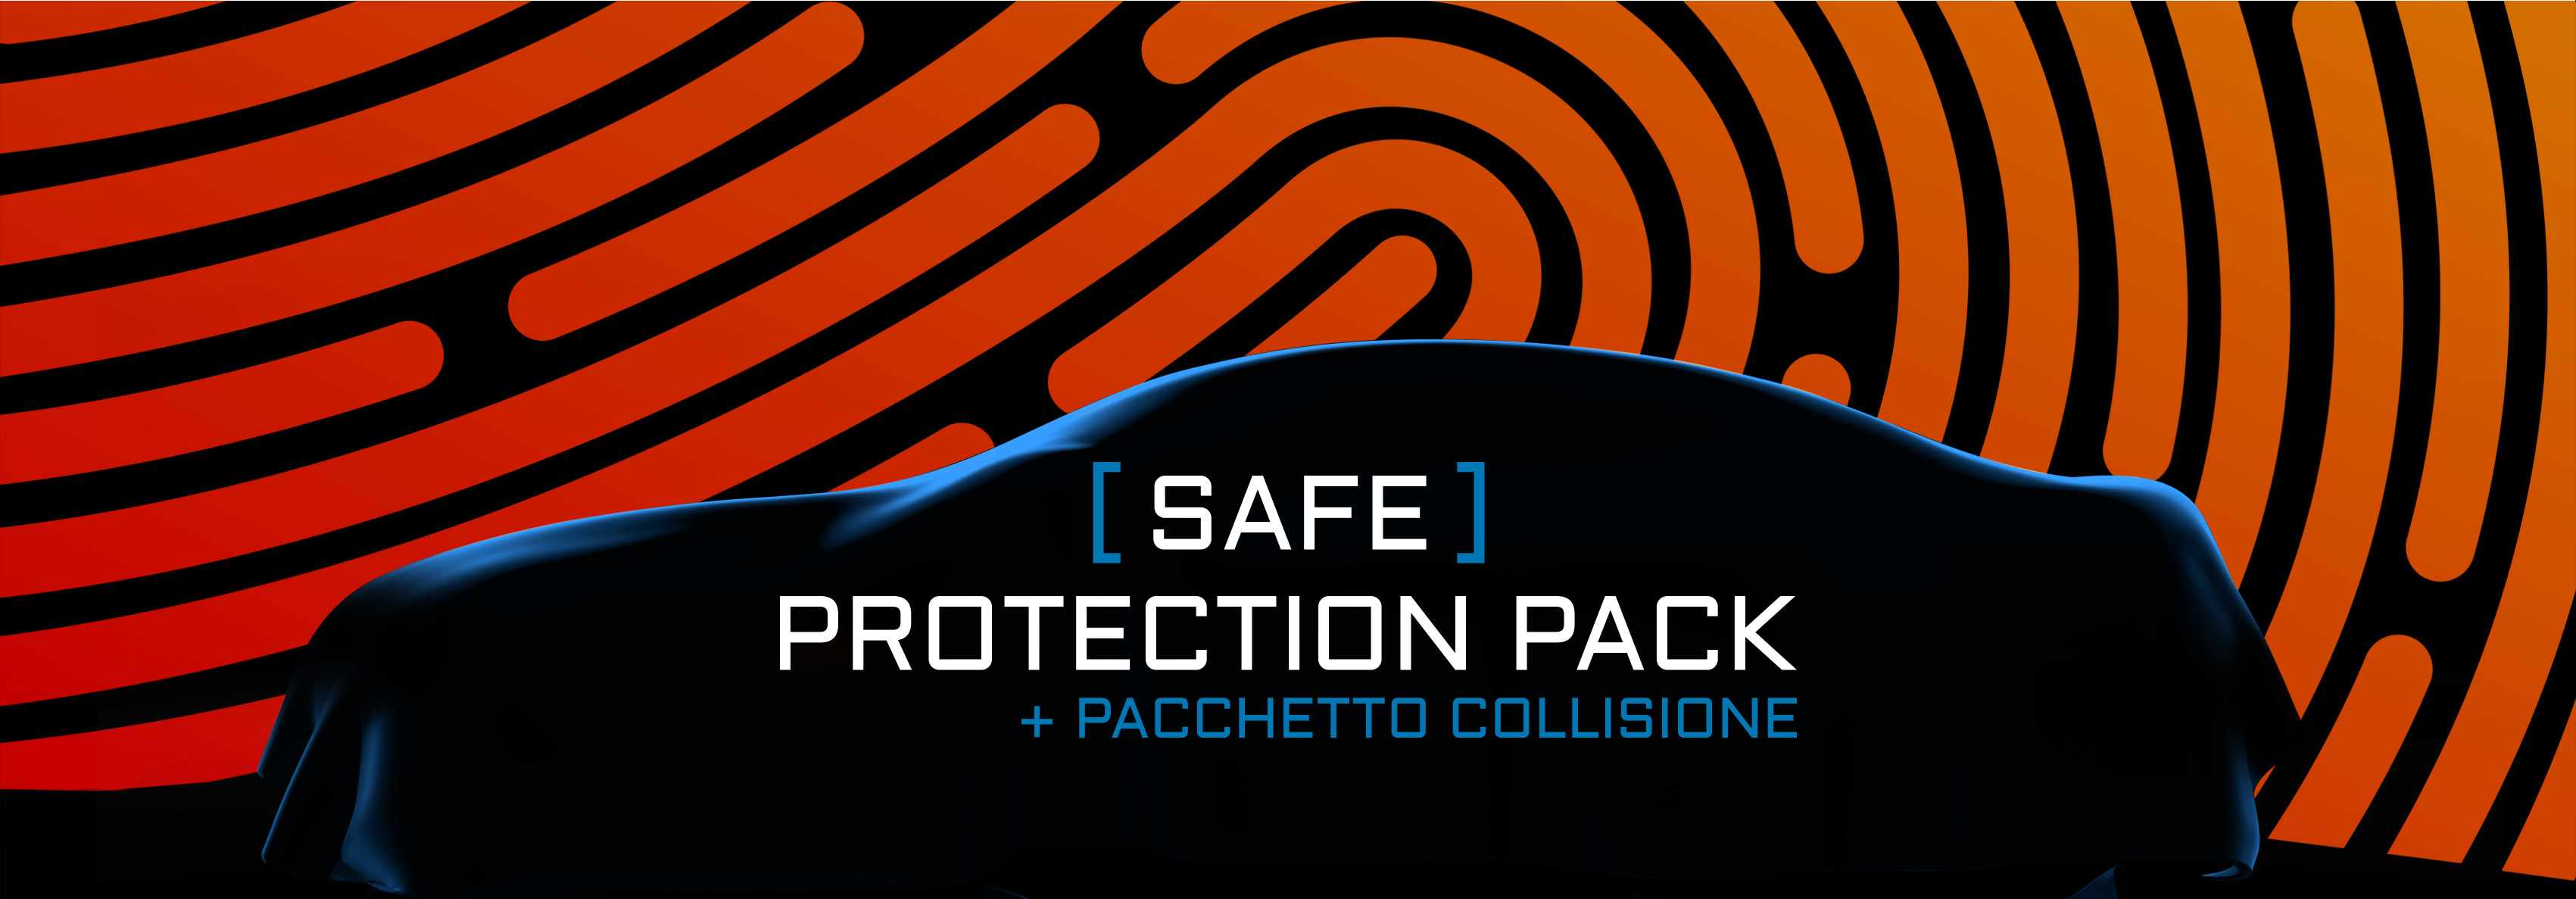 protection_pack-big